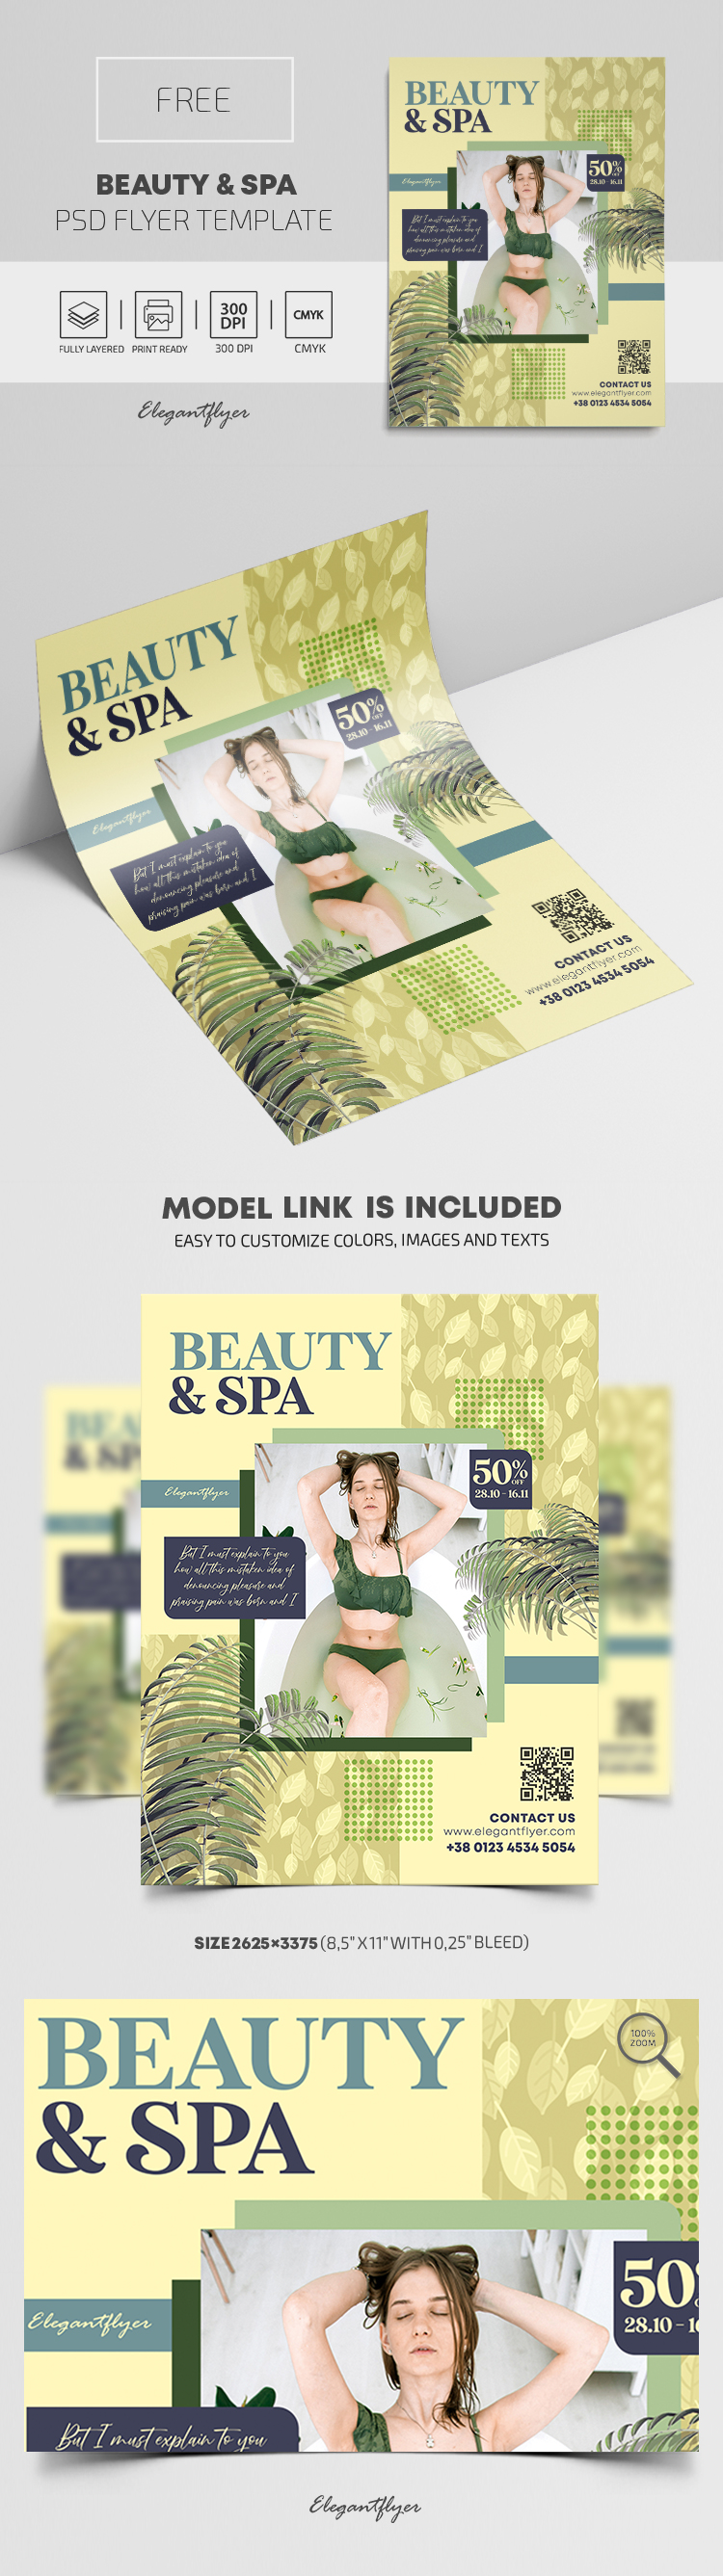 Beauty & Spa – Free Flyer PSD Template